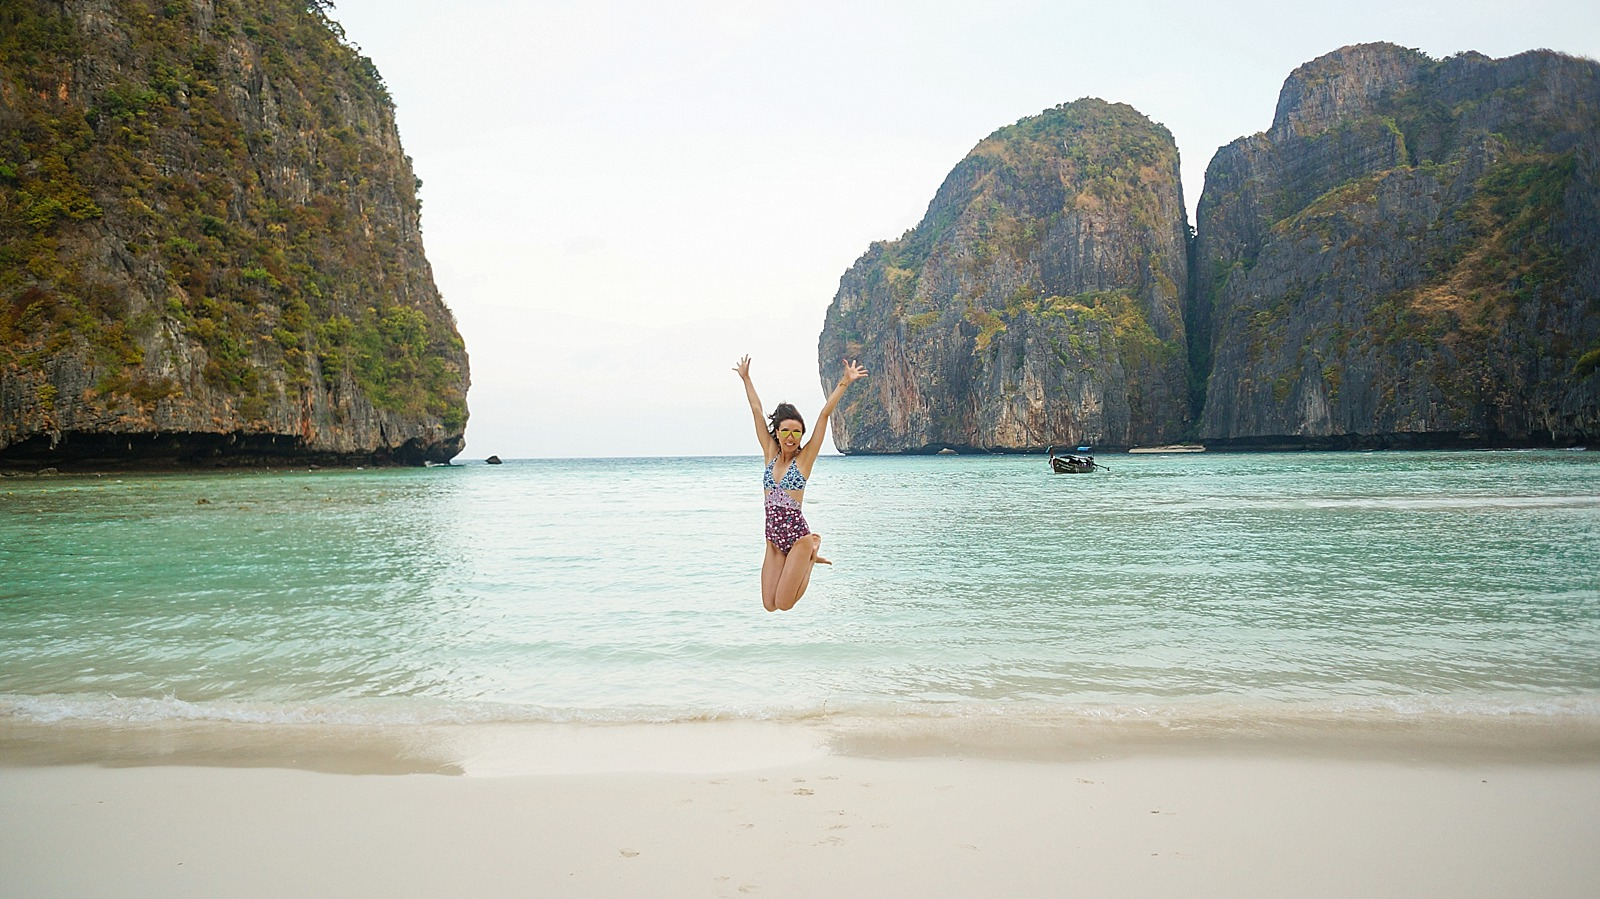 diana elizabeth blogger in Koh phi phi island Maya bay jumping in sand with hands up in the air